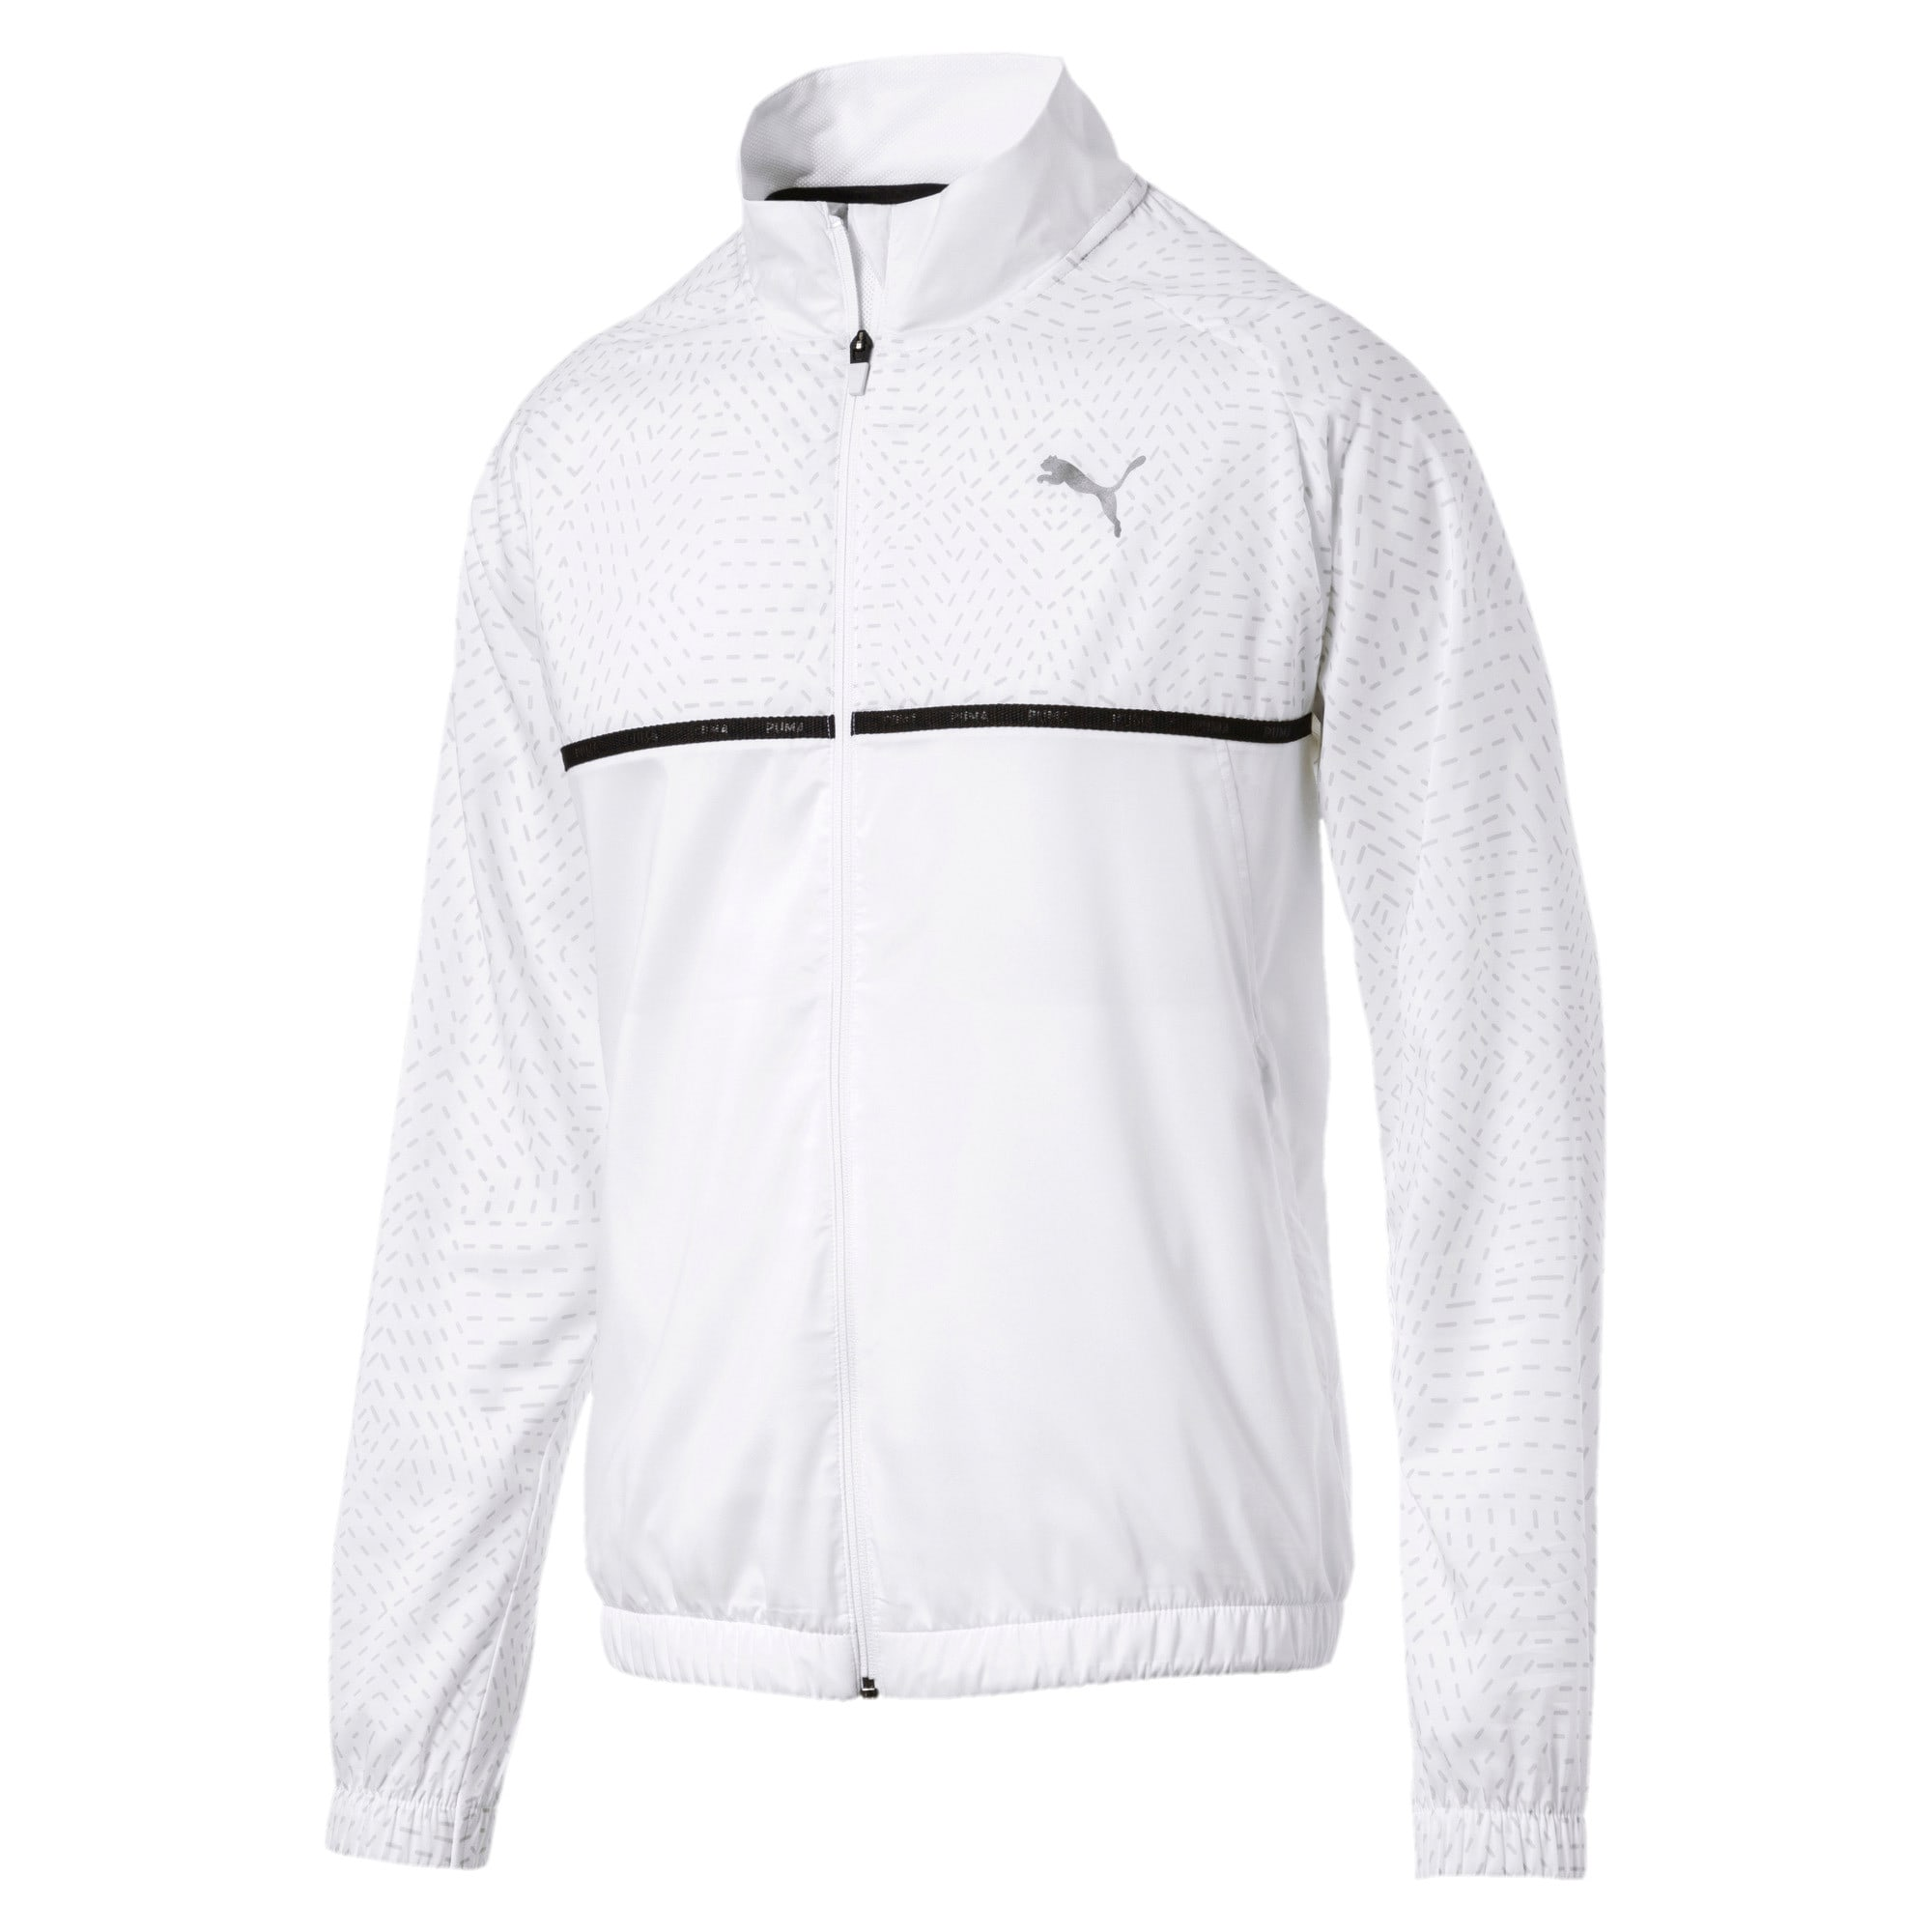 Thumbnail 1 of Energy Woven Herren Sweatjacke, Puma White, medium